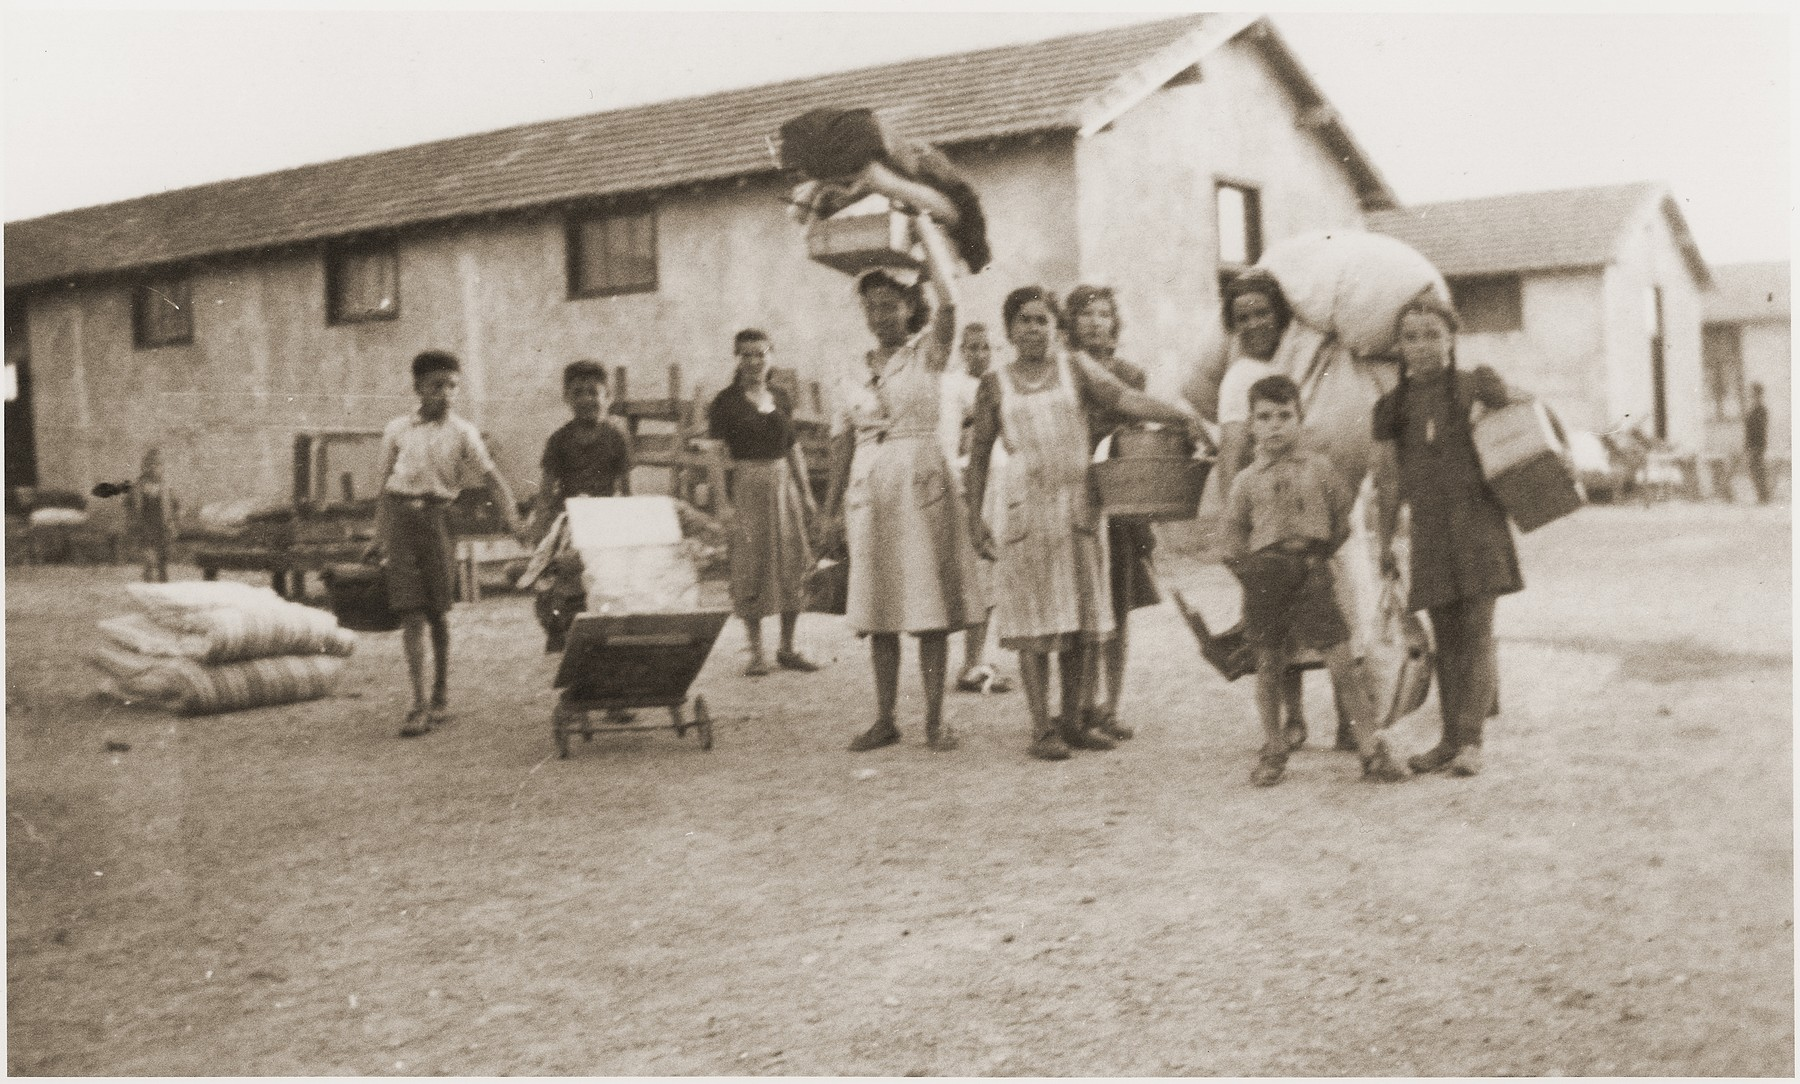 Women and children carry packages as they move to new quarters in the Rivesaltes internment camp.